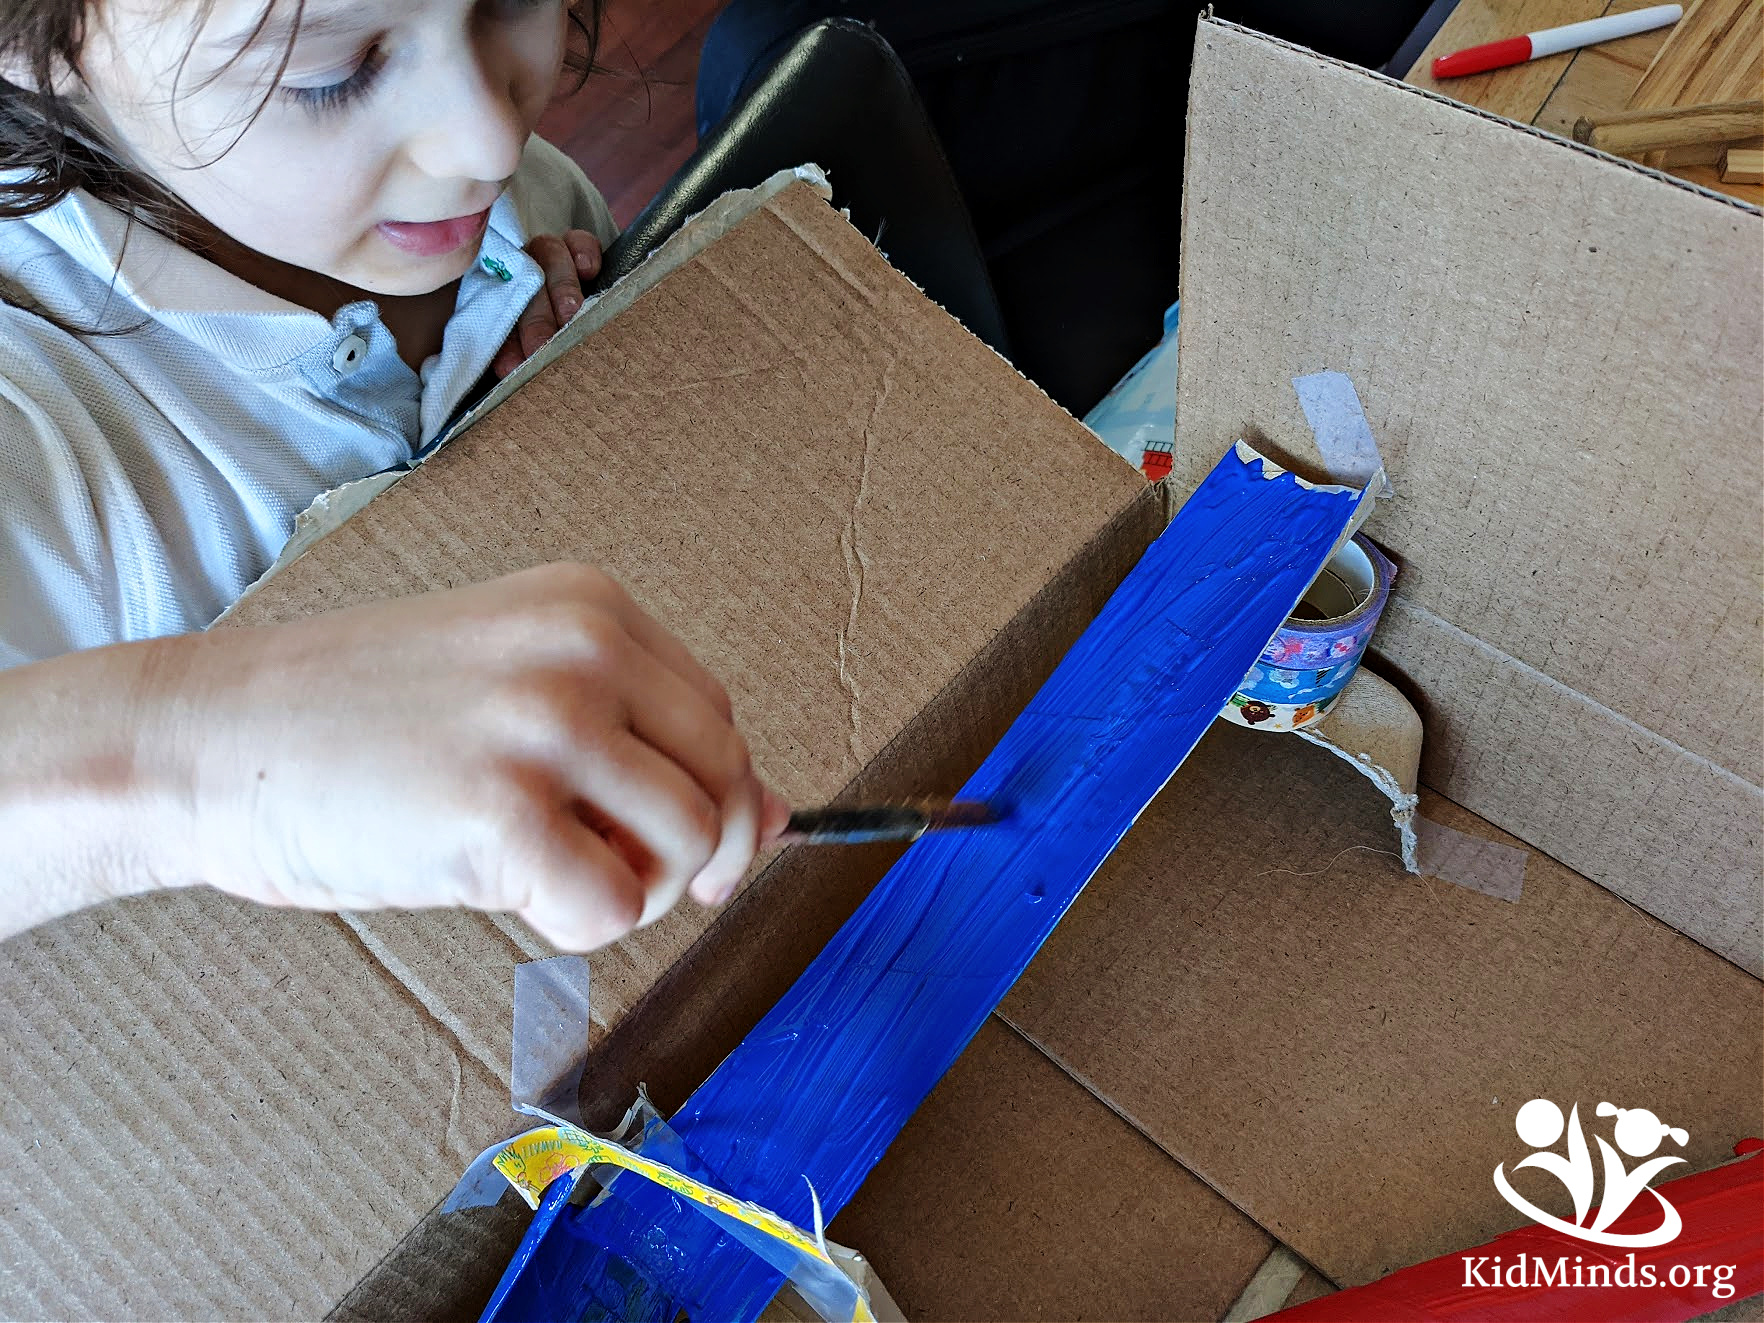 In this fun and simple STEM activity, there is plenty of opportunity to talk about inertia. #kidsactivities #STEM #cardboardbox #kidminds #handsonlearning #laughingkidslearn #marbles #learningallthetime